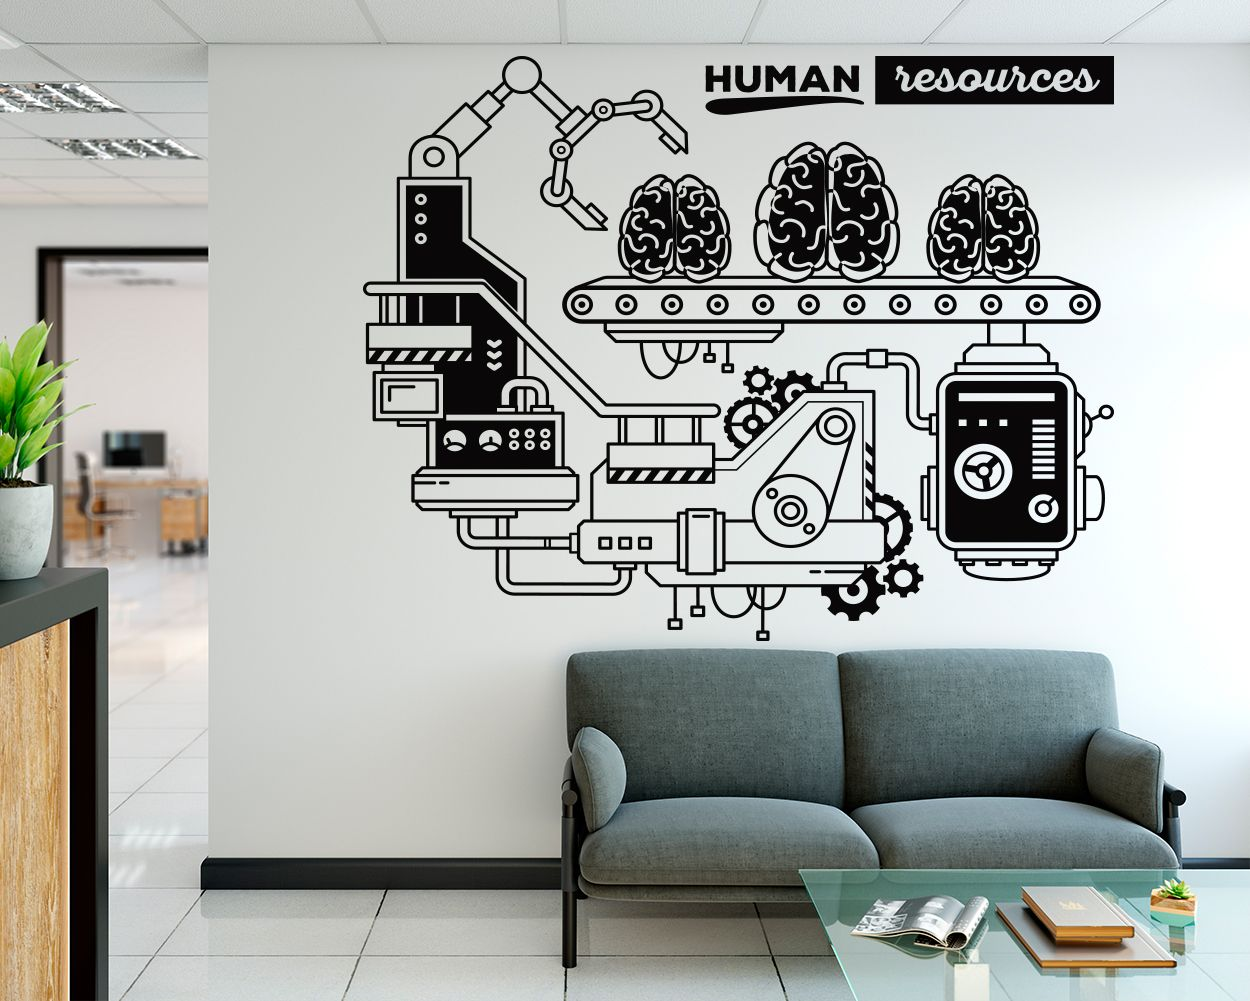 Human Resources Office Wall Decor